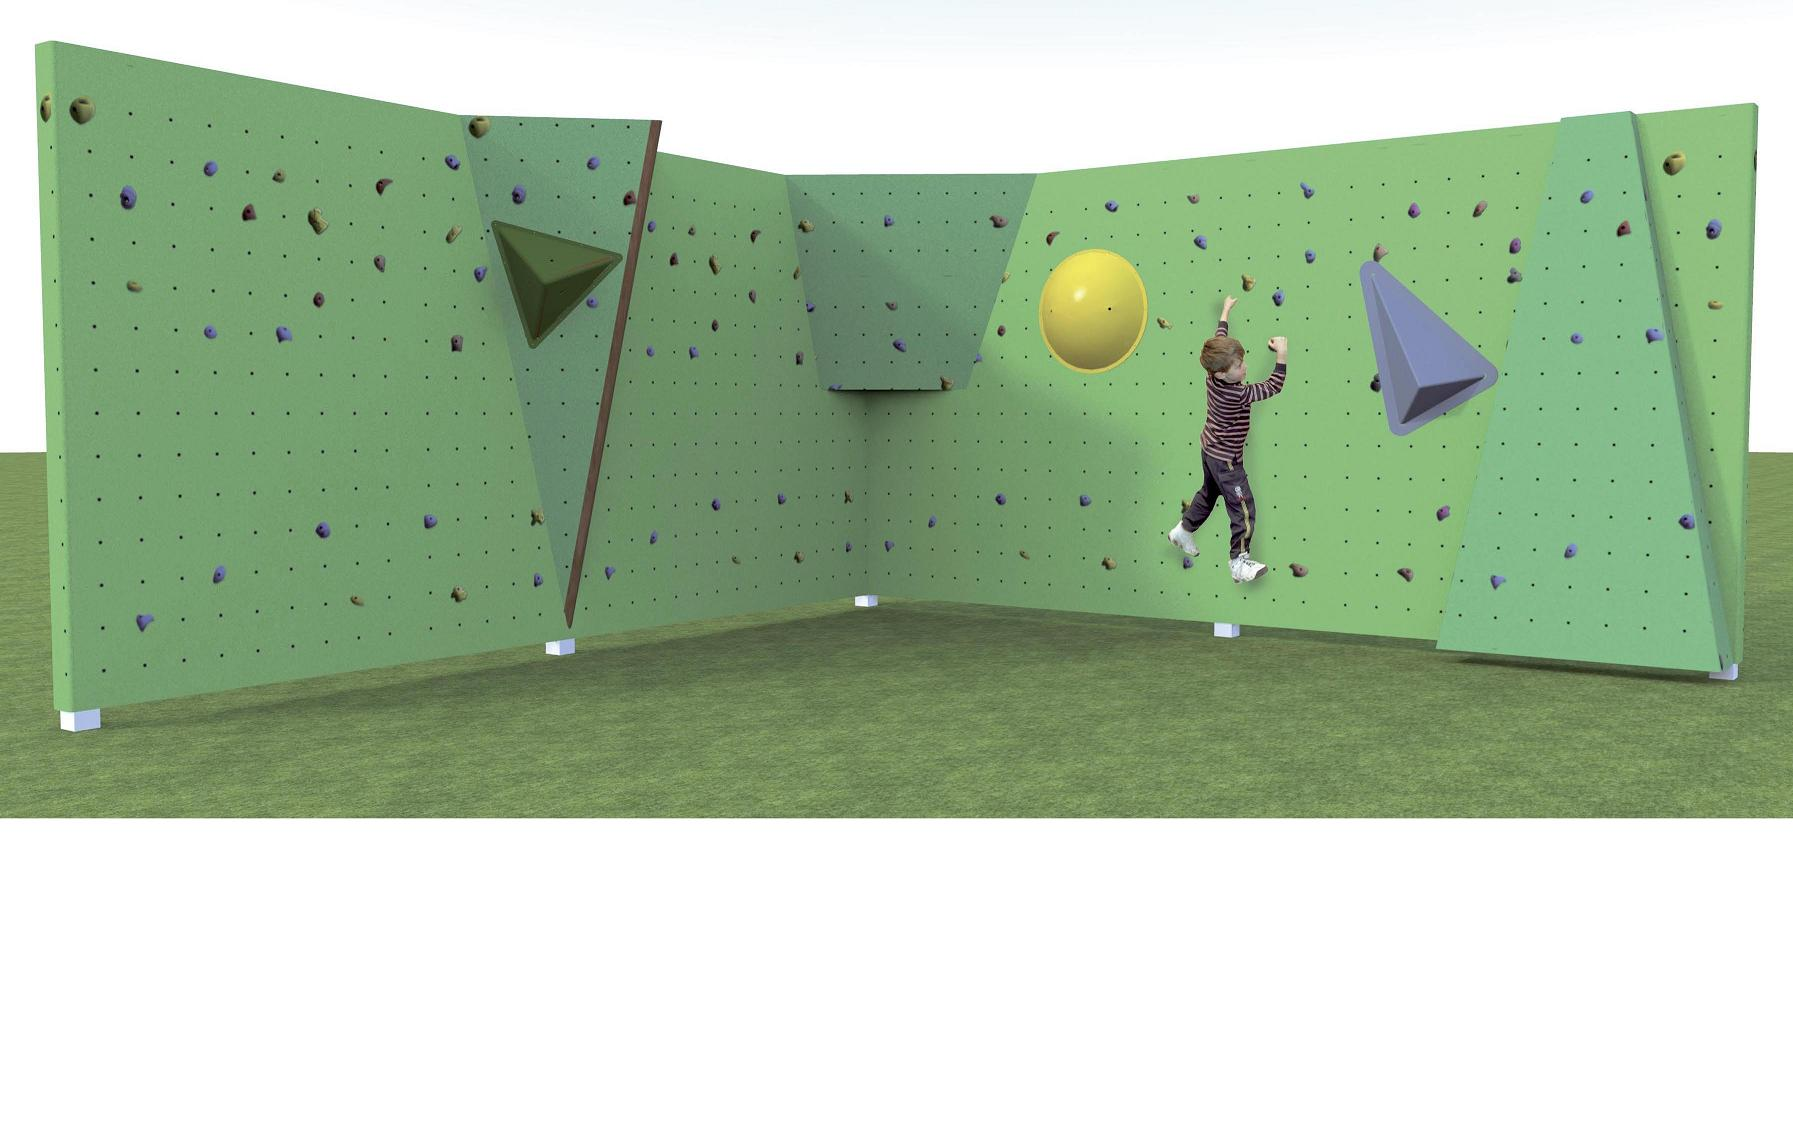 Rock Wall Design : Climbing Wall View Wall design Low Rope course. View Course design